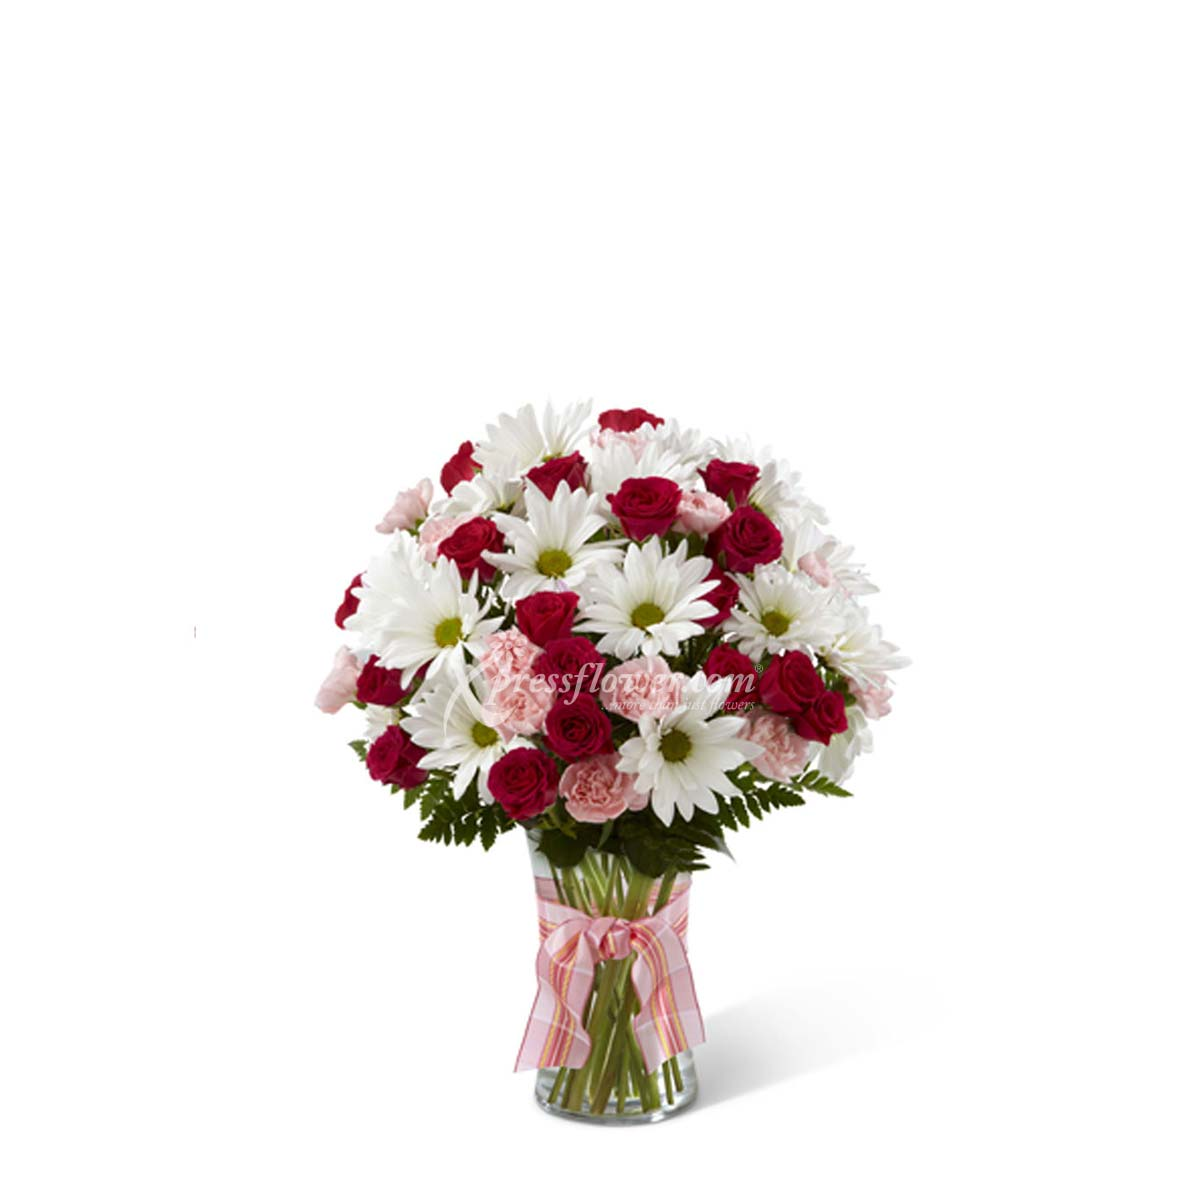 IDTW1805 ARRANGEMENT OF ROSES AND GERBERAS/ DAISIES (TW)